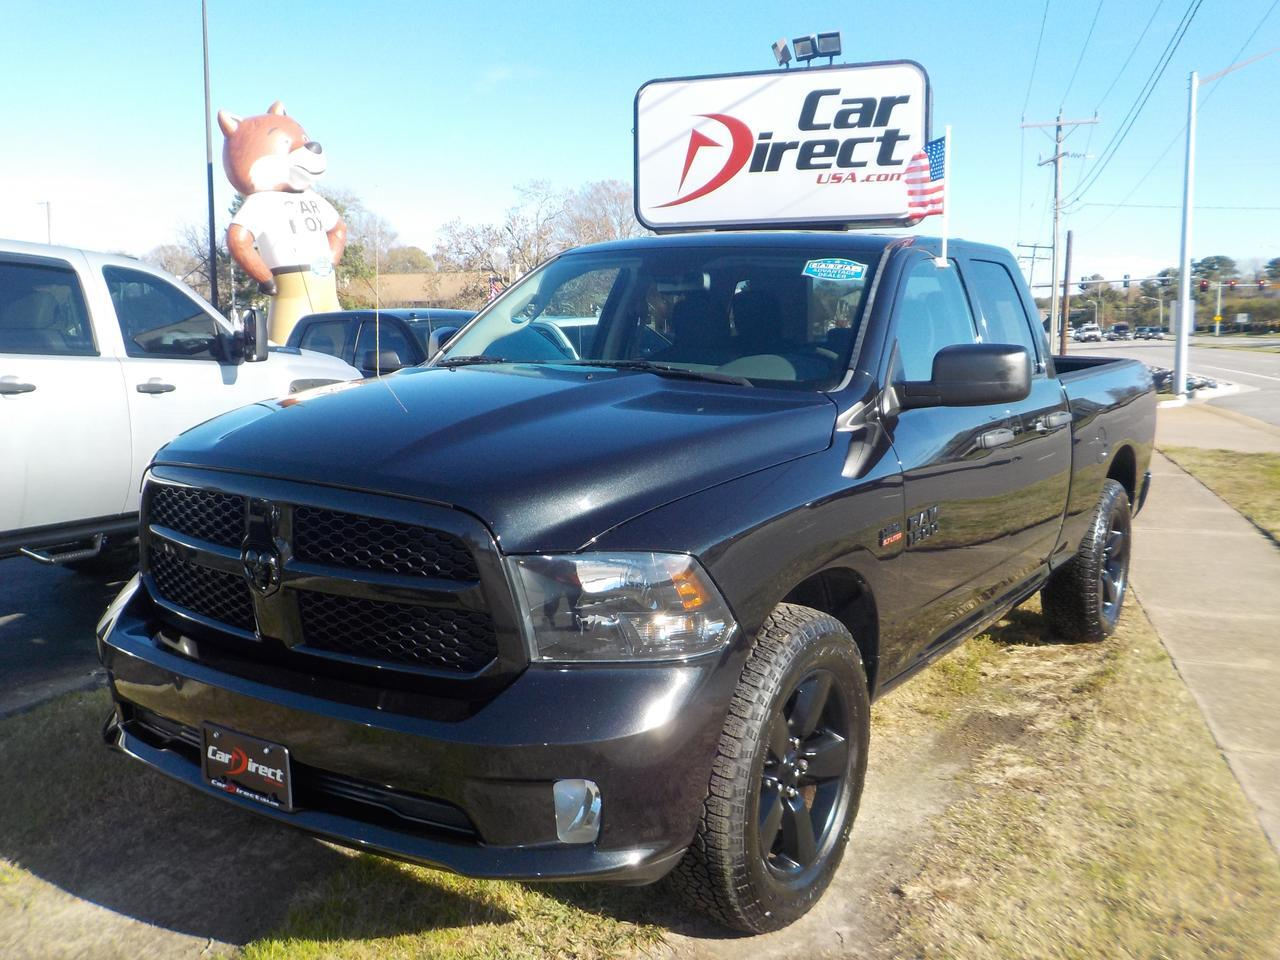 2016 RAM 1500 QUAD CAB TRADESMAN 4X4, BLUETOOTH WIRELESS, TOW PKG, VERY CLEAN, WELL MAINTAINED, ONLY 65K MILES! Virginia Beach VA